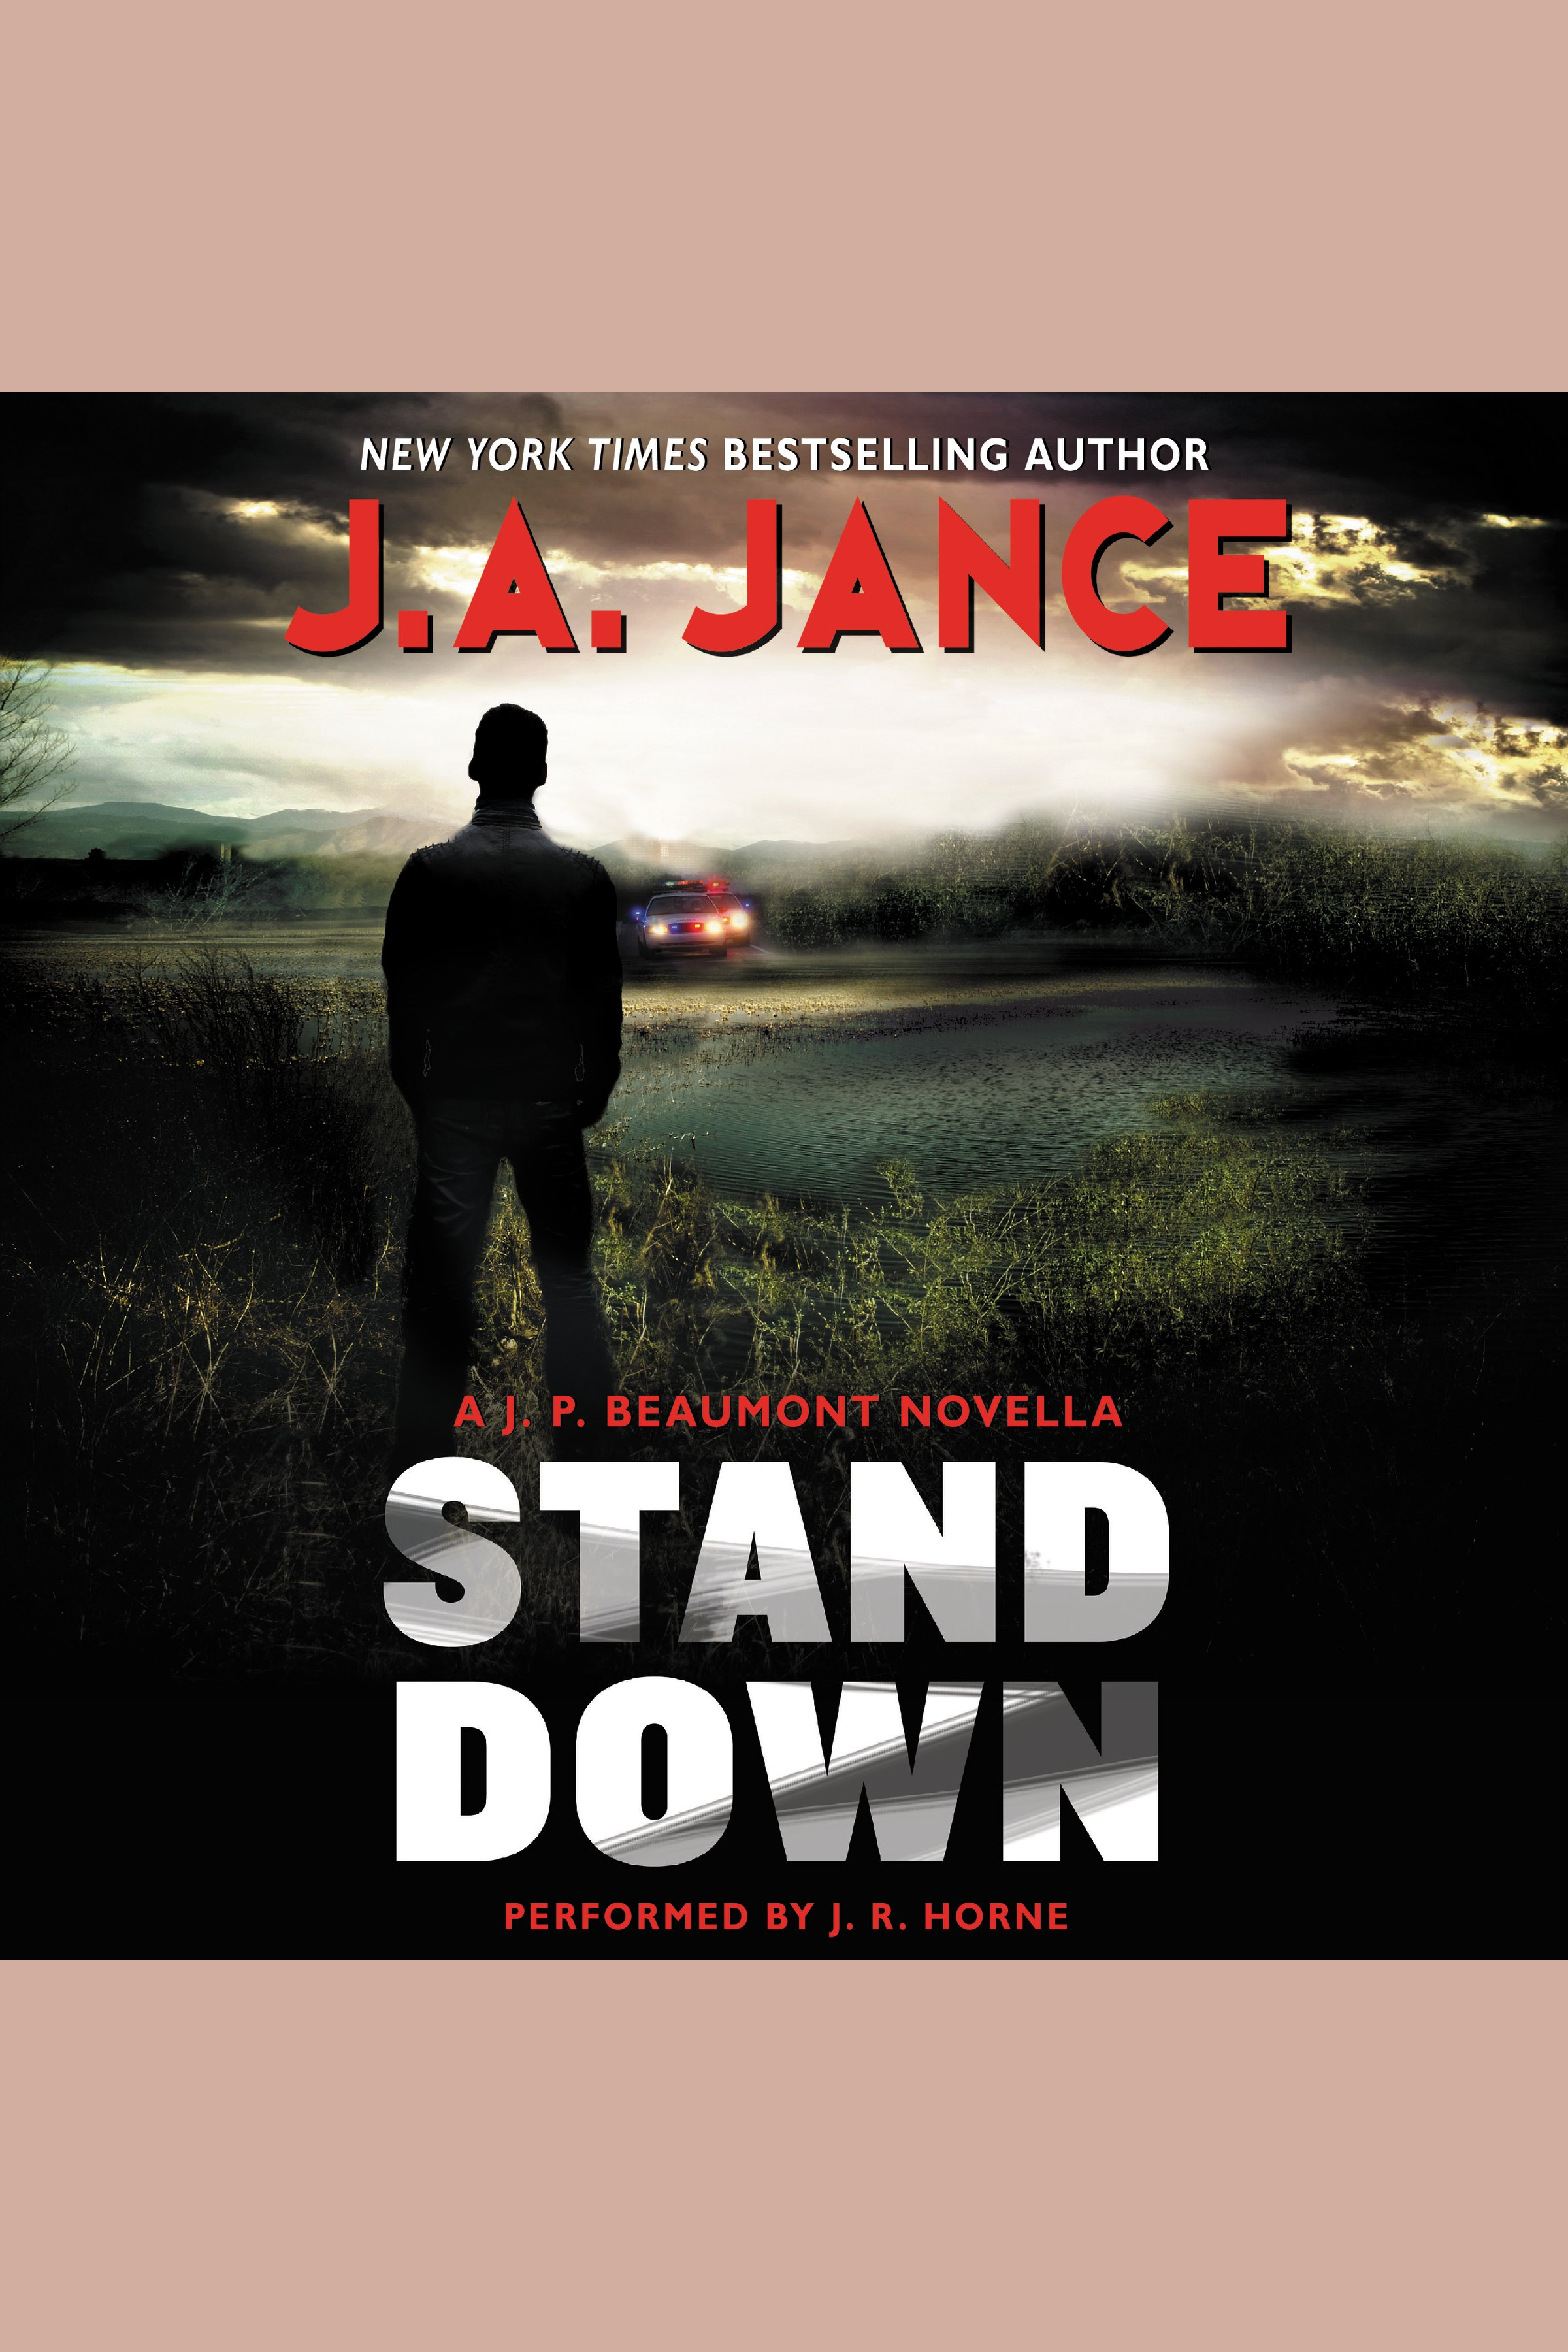 Stand Down A J.P. Beaumont Novella